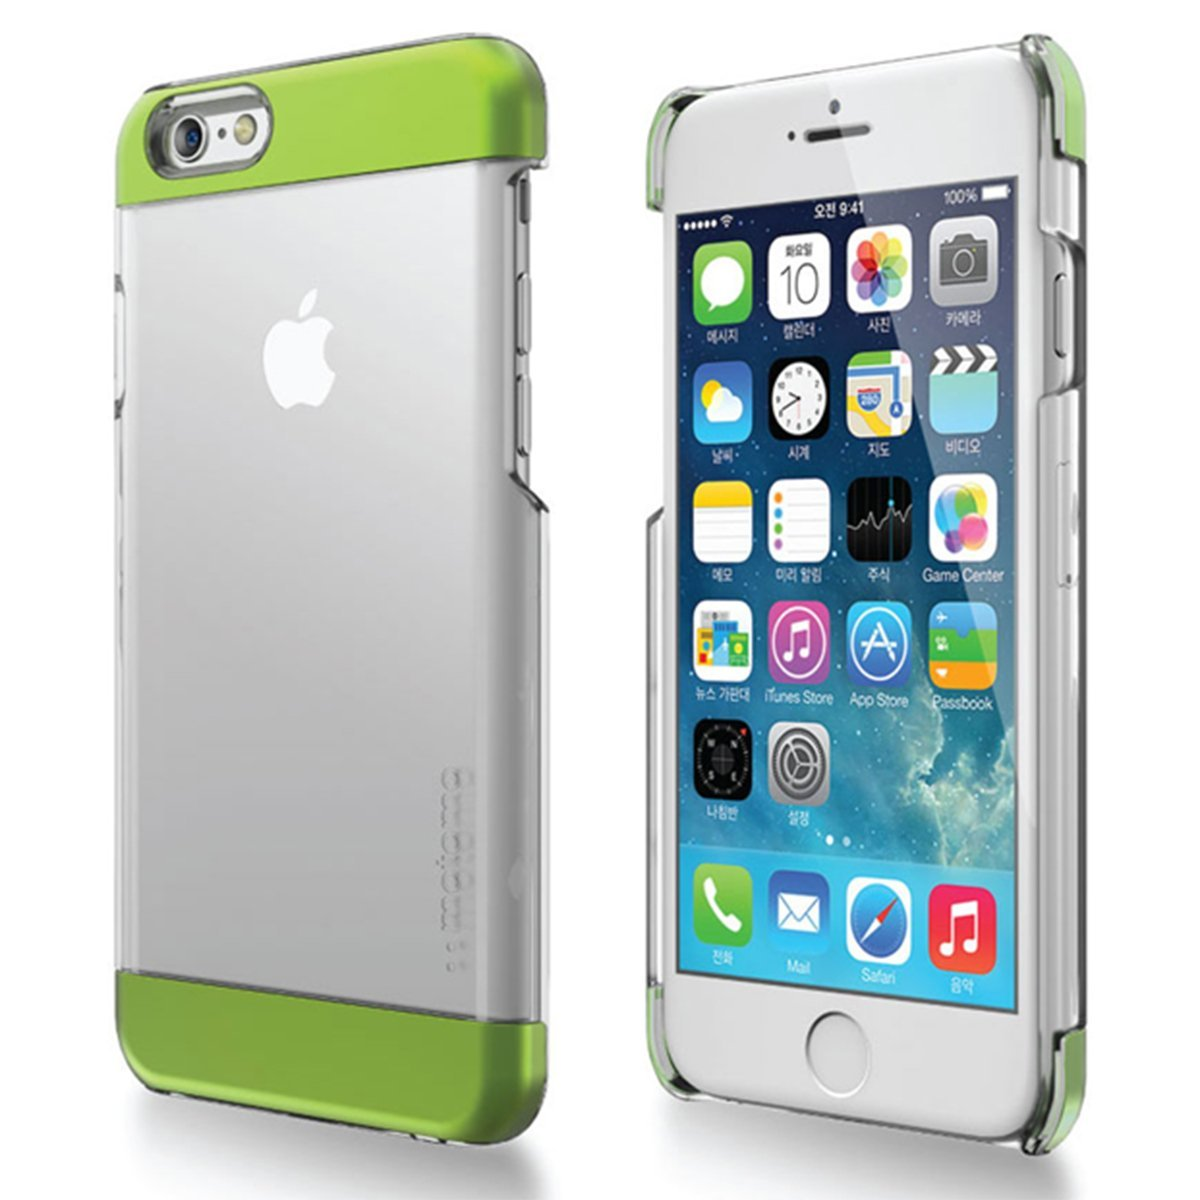 Made for Apple iPhone 6 PLUS/6S PLUS (5.5 inch) Case, INO Wing Series [Green] Slim Clear Form-Fitting Hard Plastic Protective Case Cover by Redshield